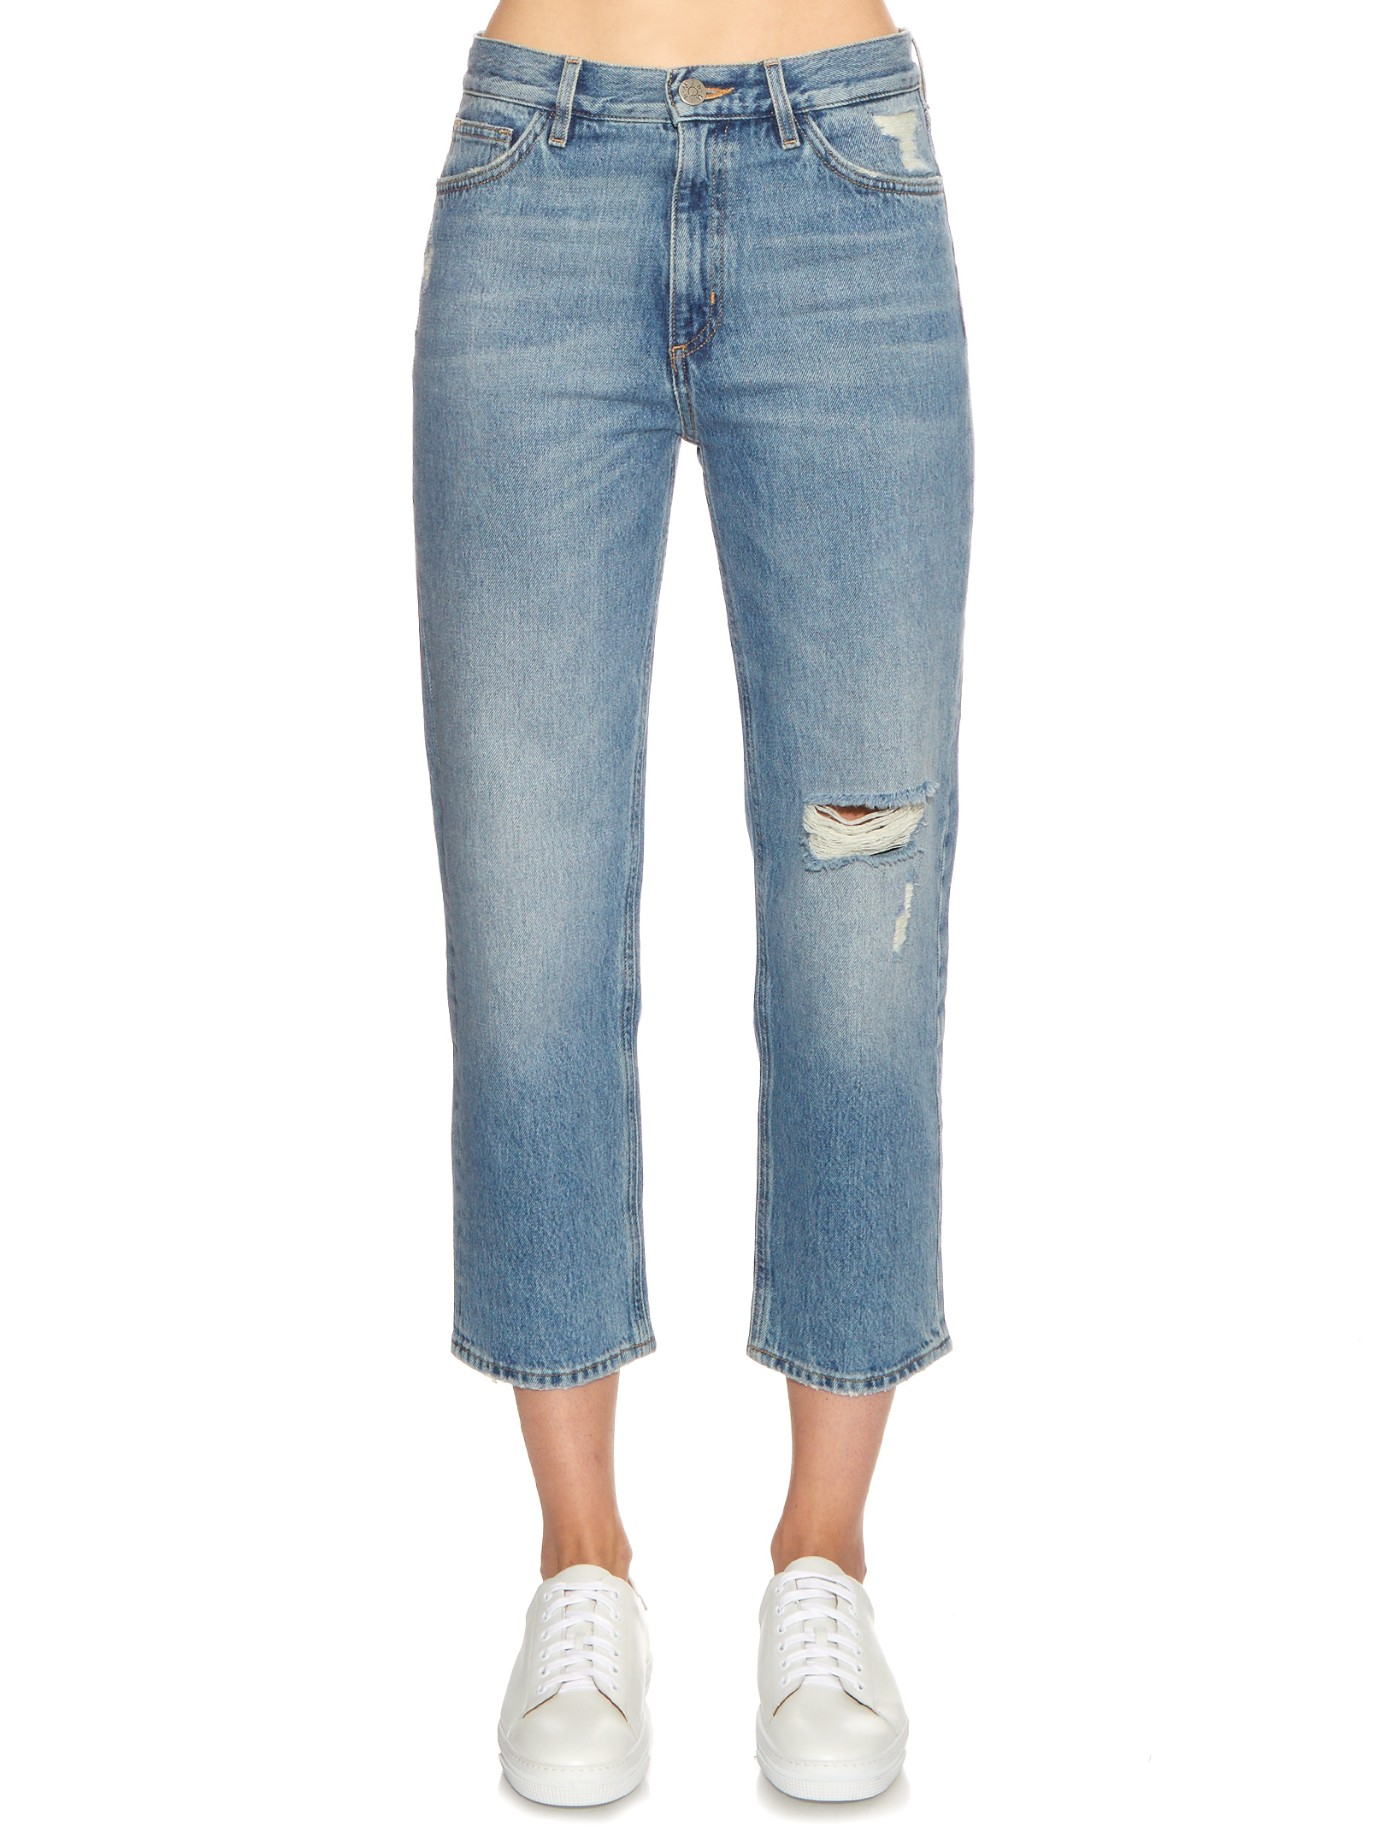 Jeanne High-rise Cropped Distressed Straight-leg Jeans - Blue Mih Jeans Cheap Sale Wholesale Price Qa19Hoh4Z